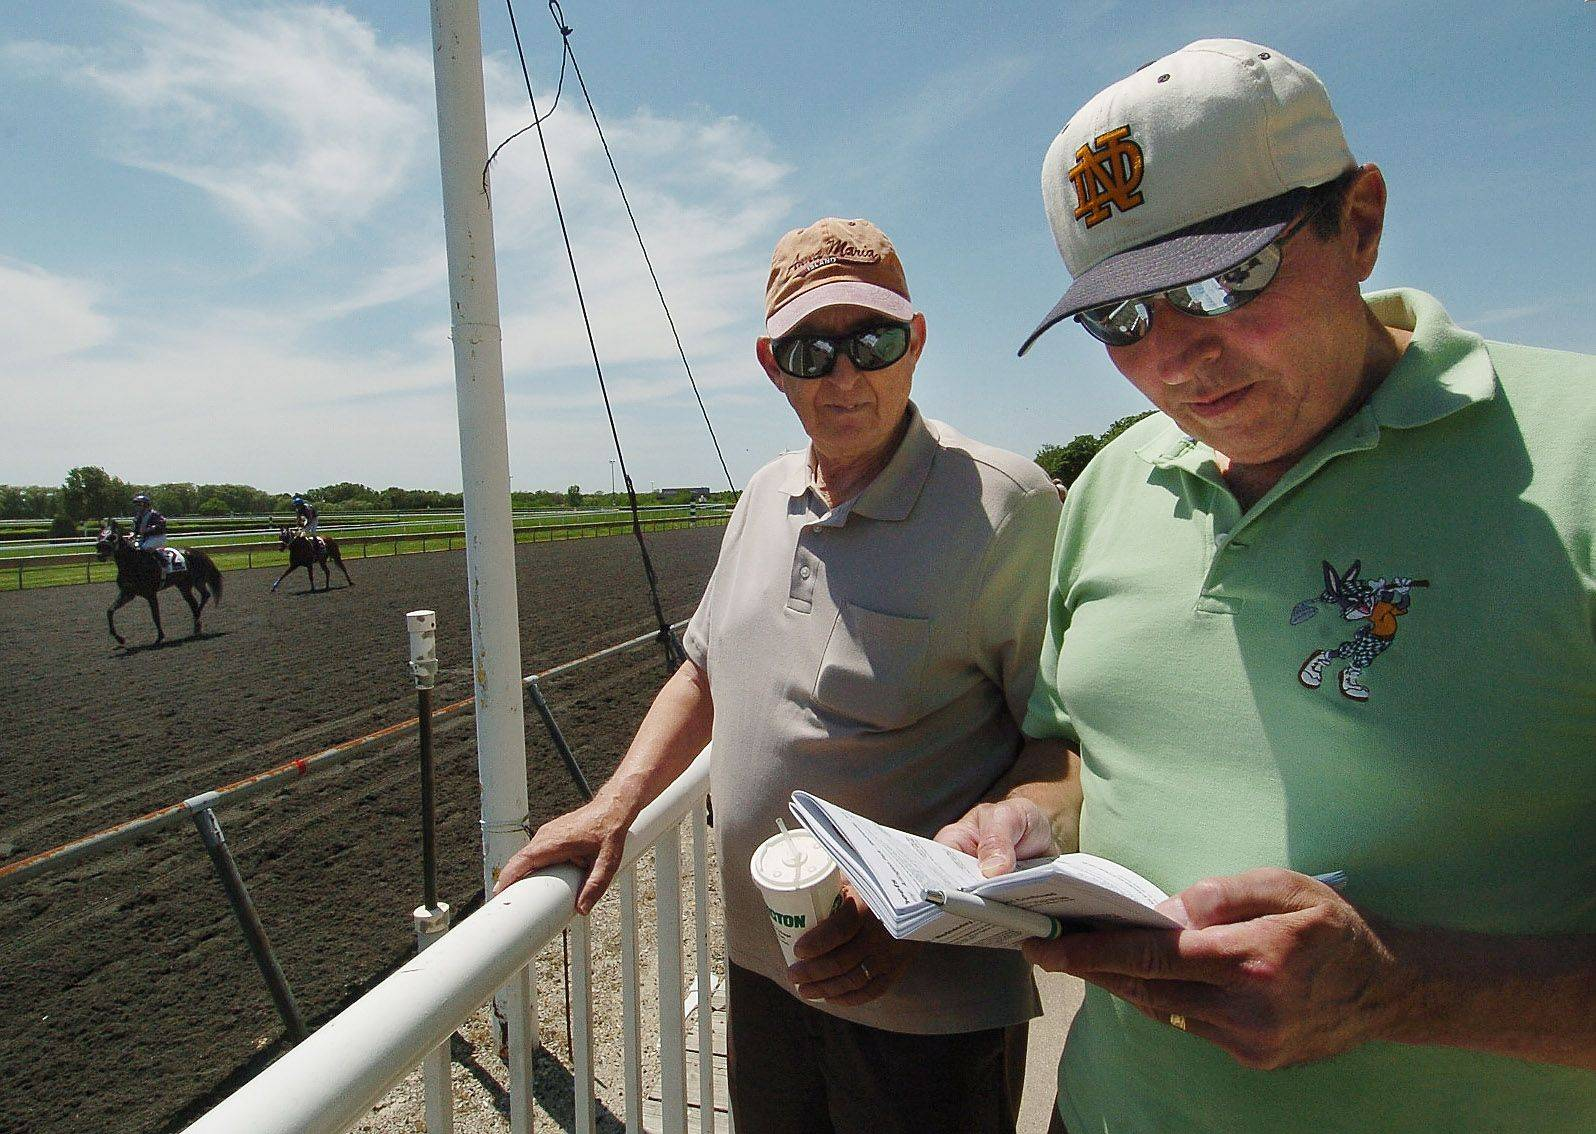 Veterans of many sporting events and casinos, Milwaukee retirees Ronald Schleicher, left, and Jim Herro say Arlington Park is more about the horses and atmosphere than the gambling.